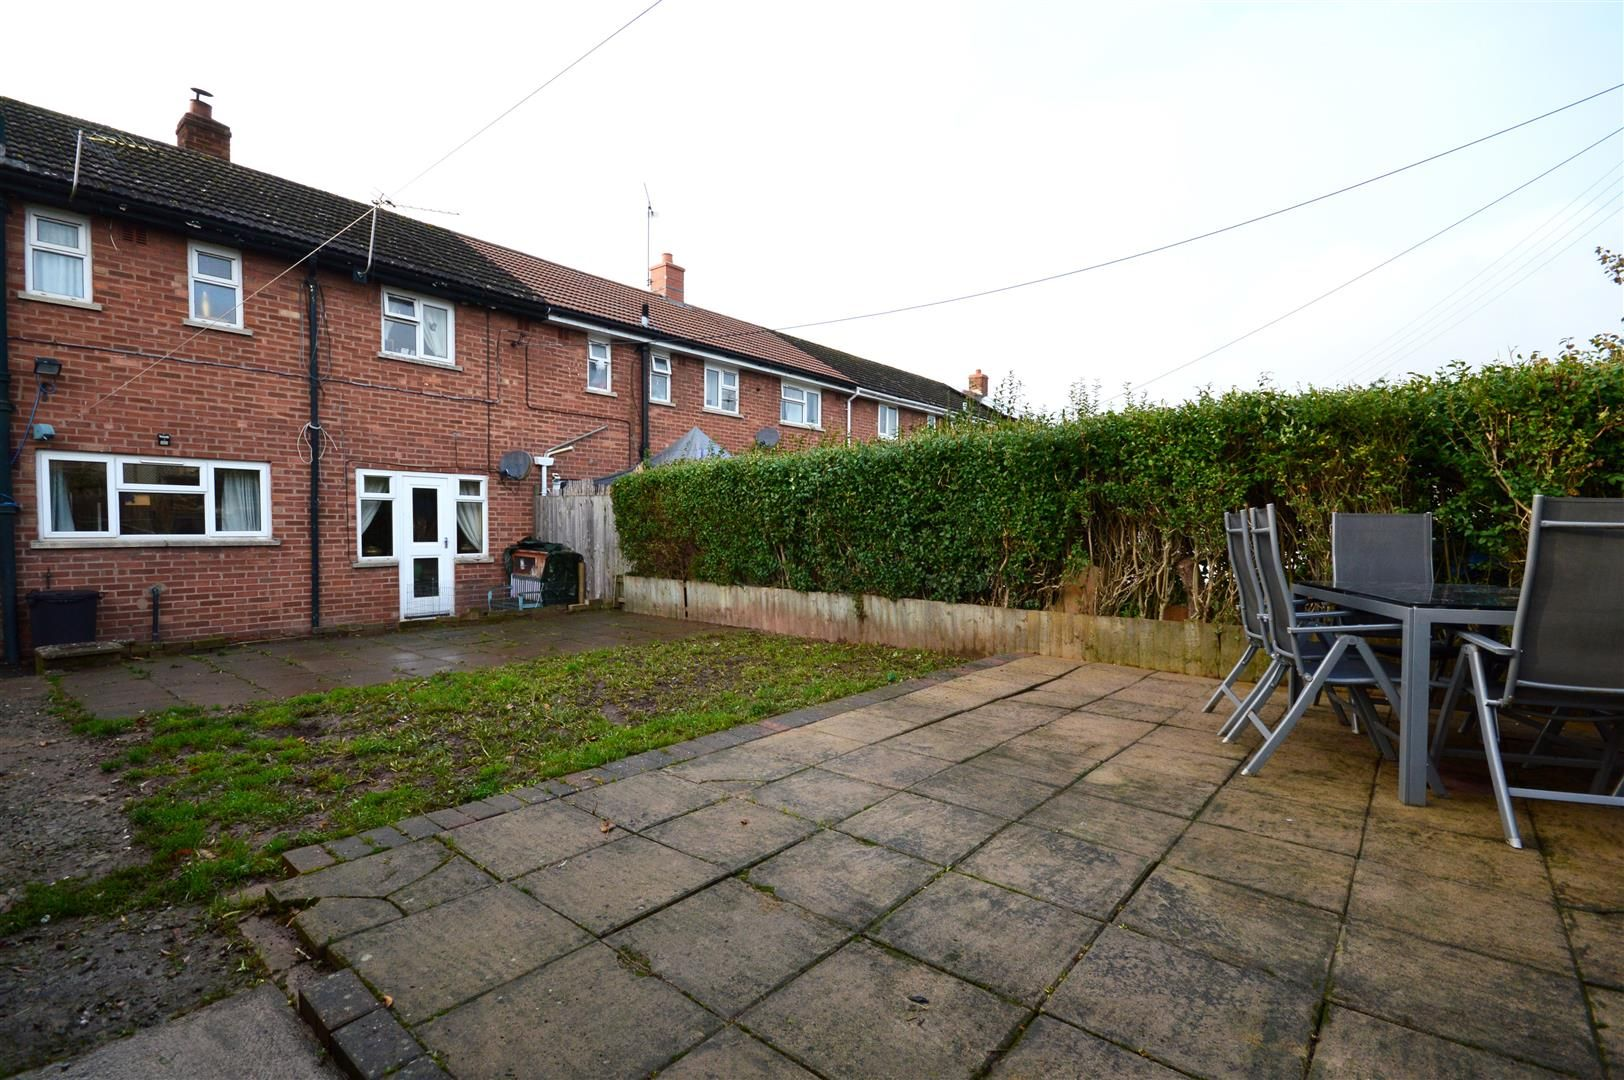 3 bed terraced for sale in Weobley 8